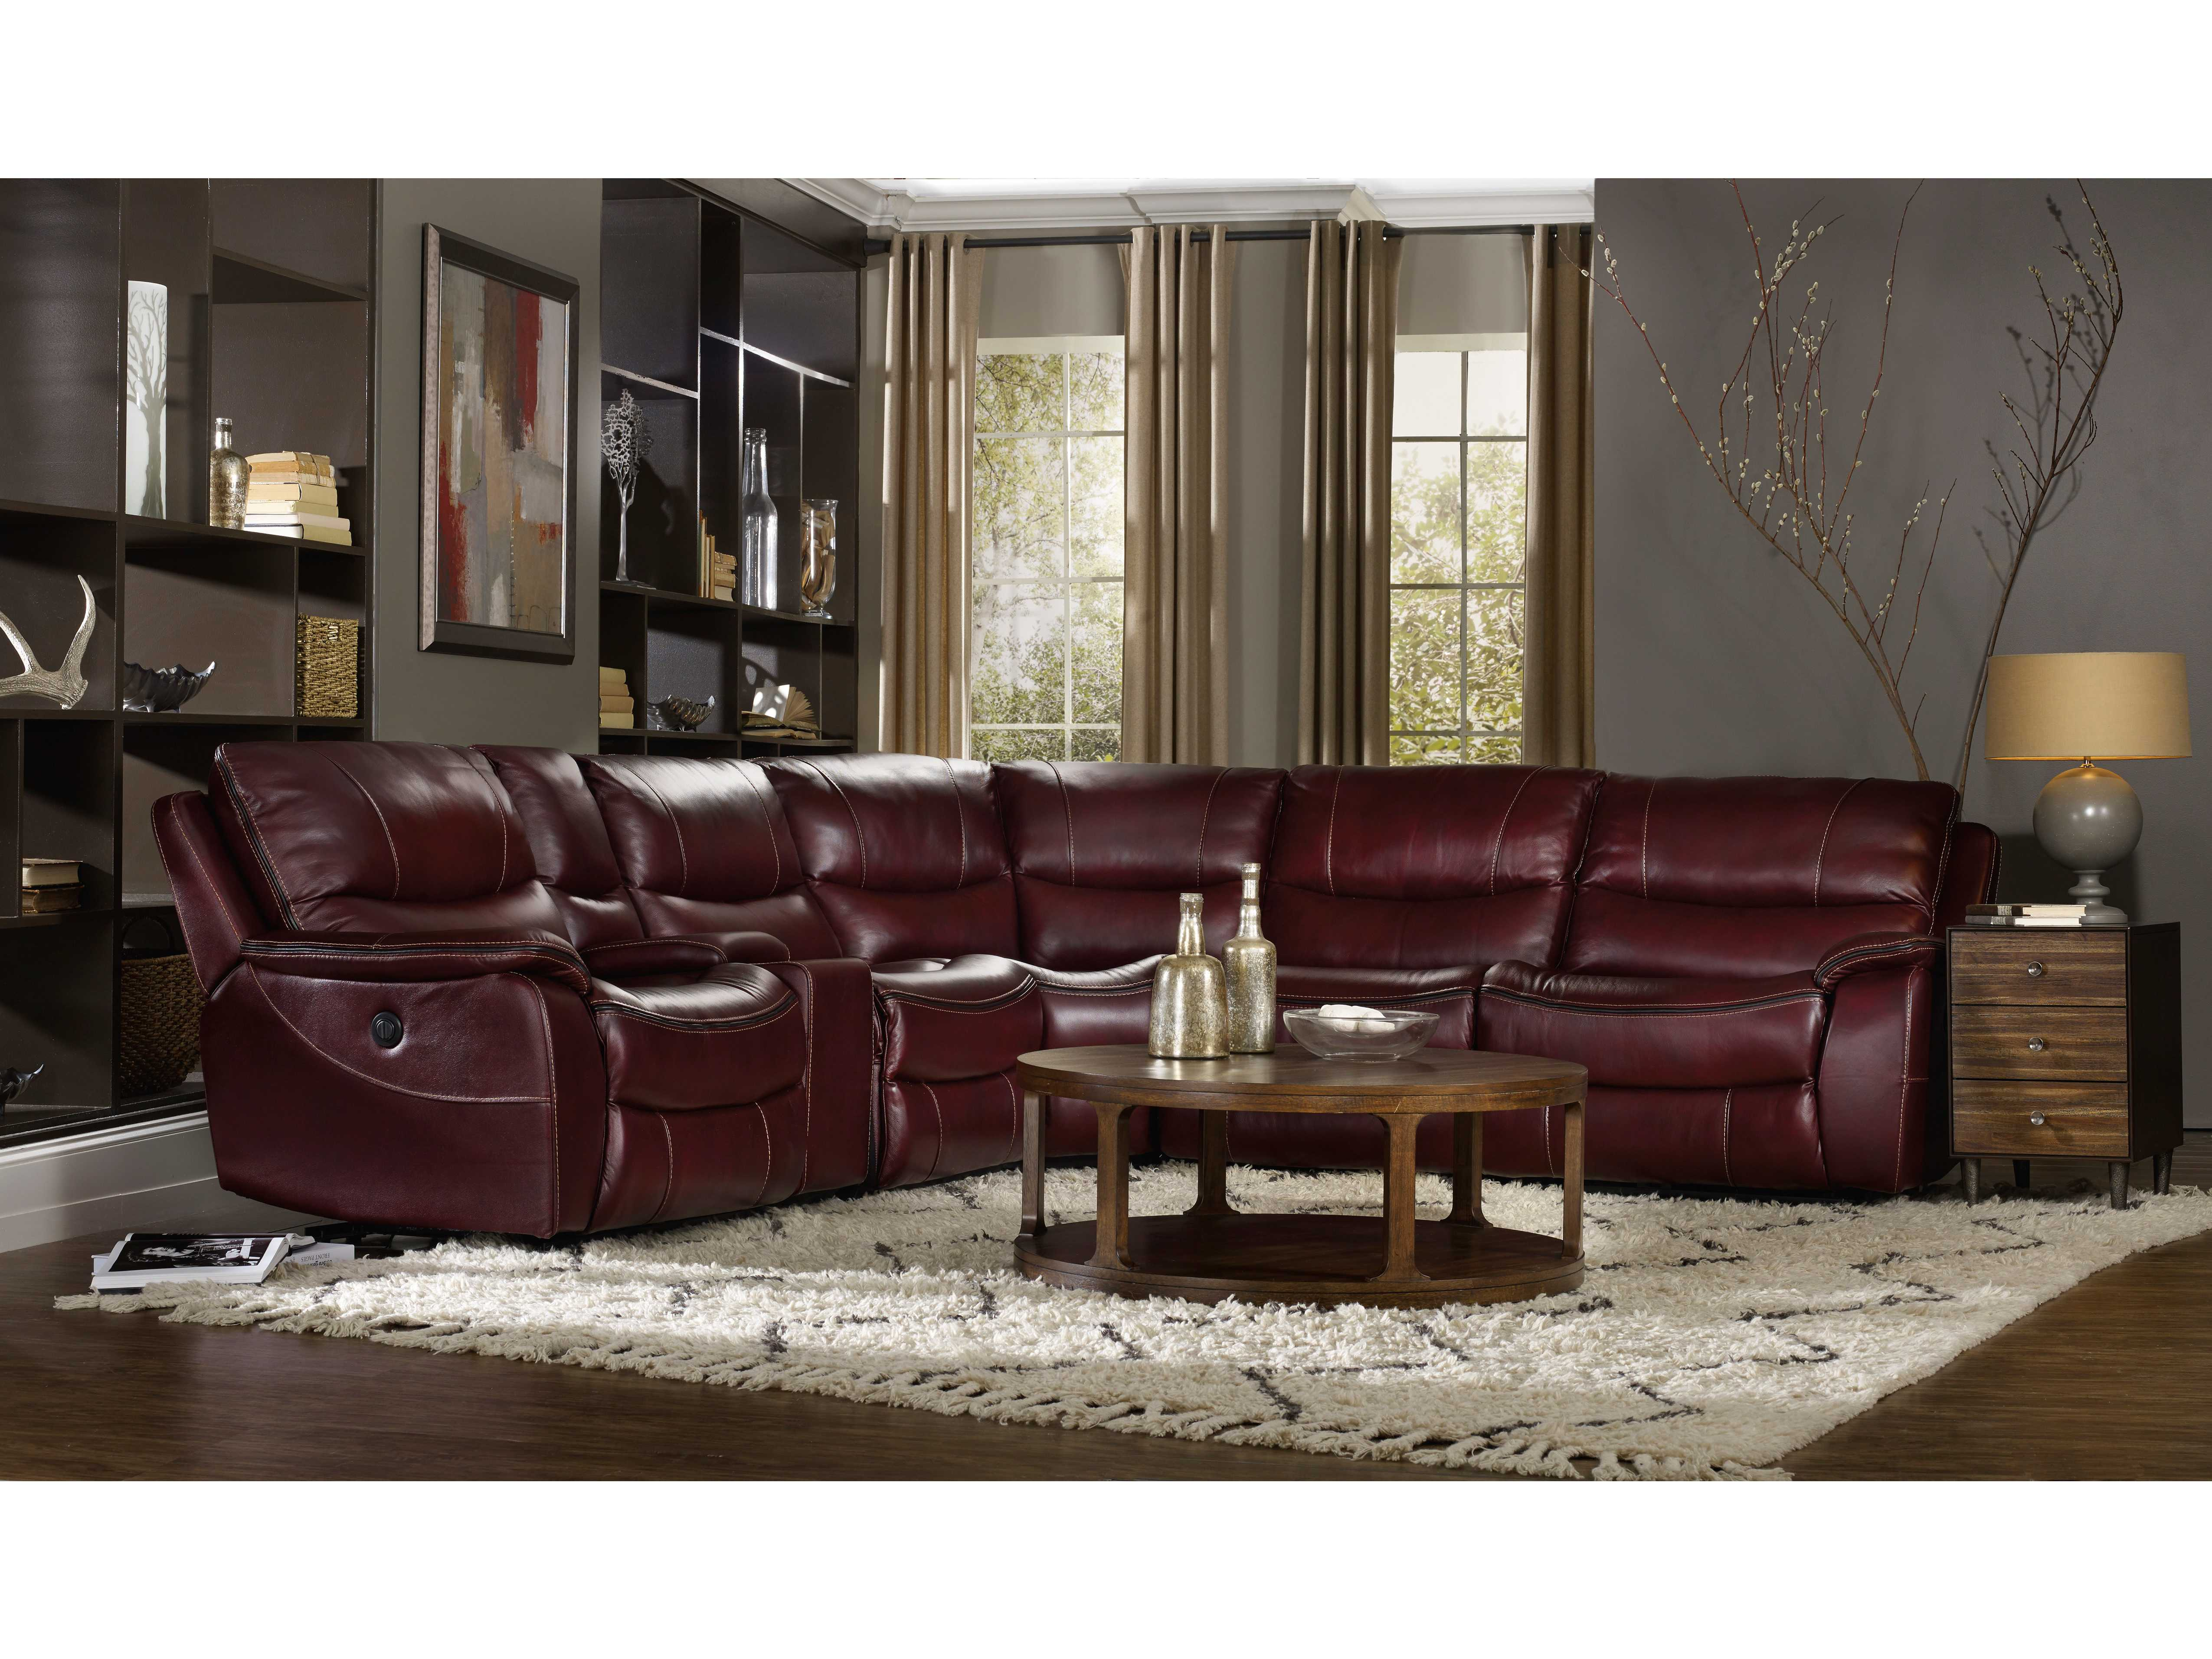 Hooker Furniture Red Wine with Black Trim 6 Piece Power Sectional